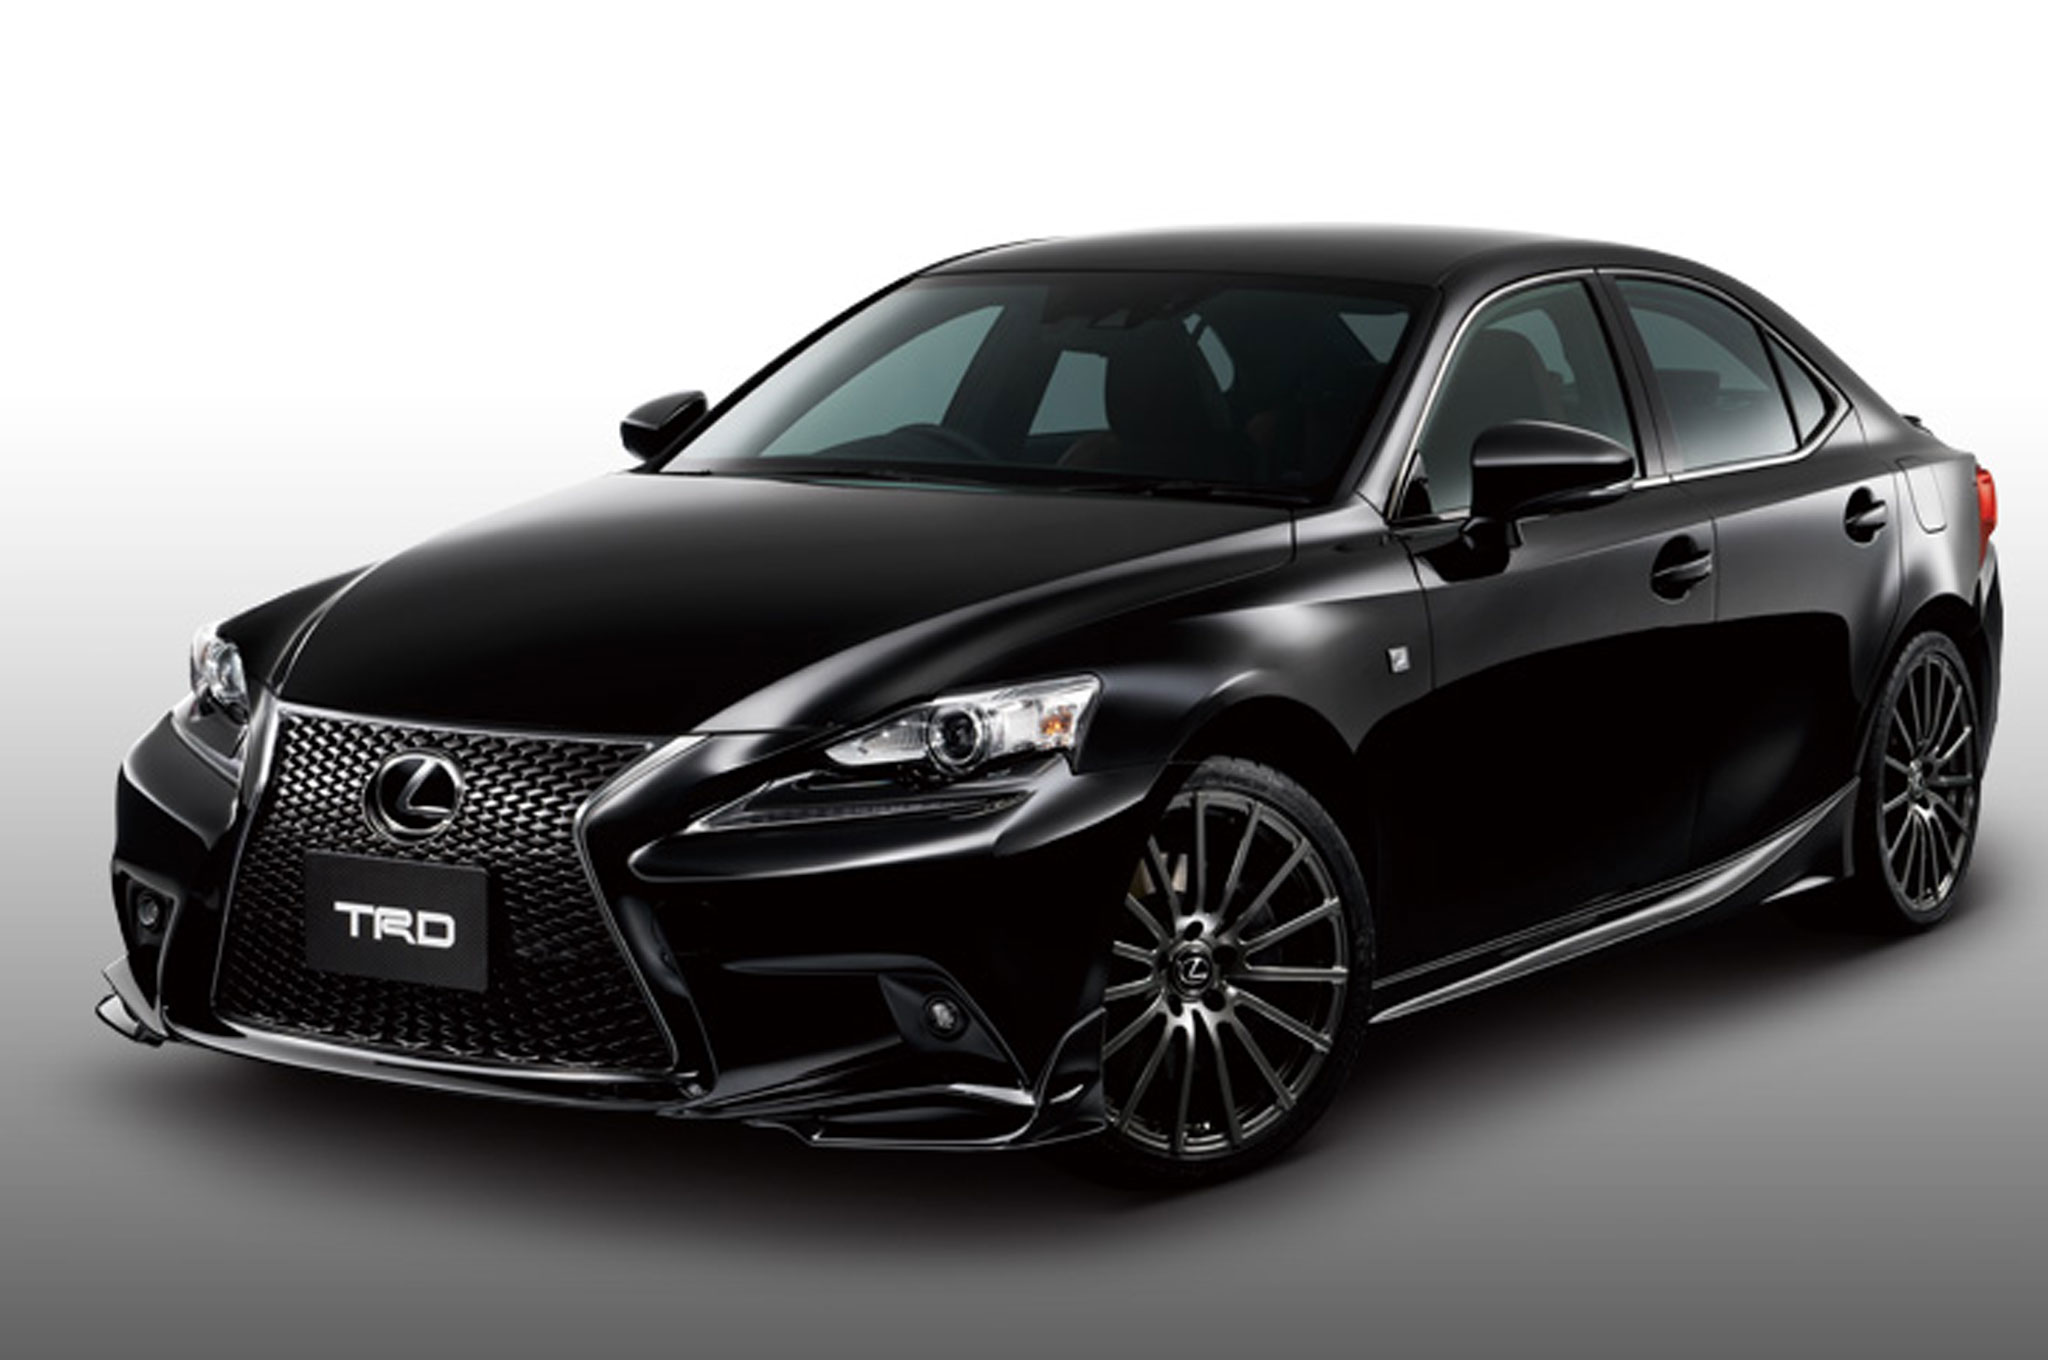 2014 Lexus Is F #2